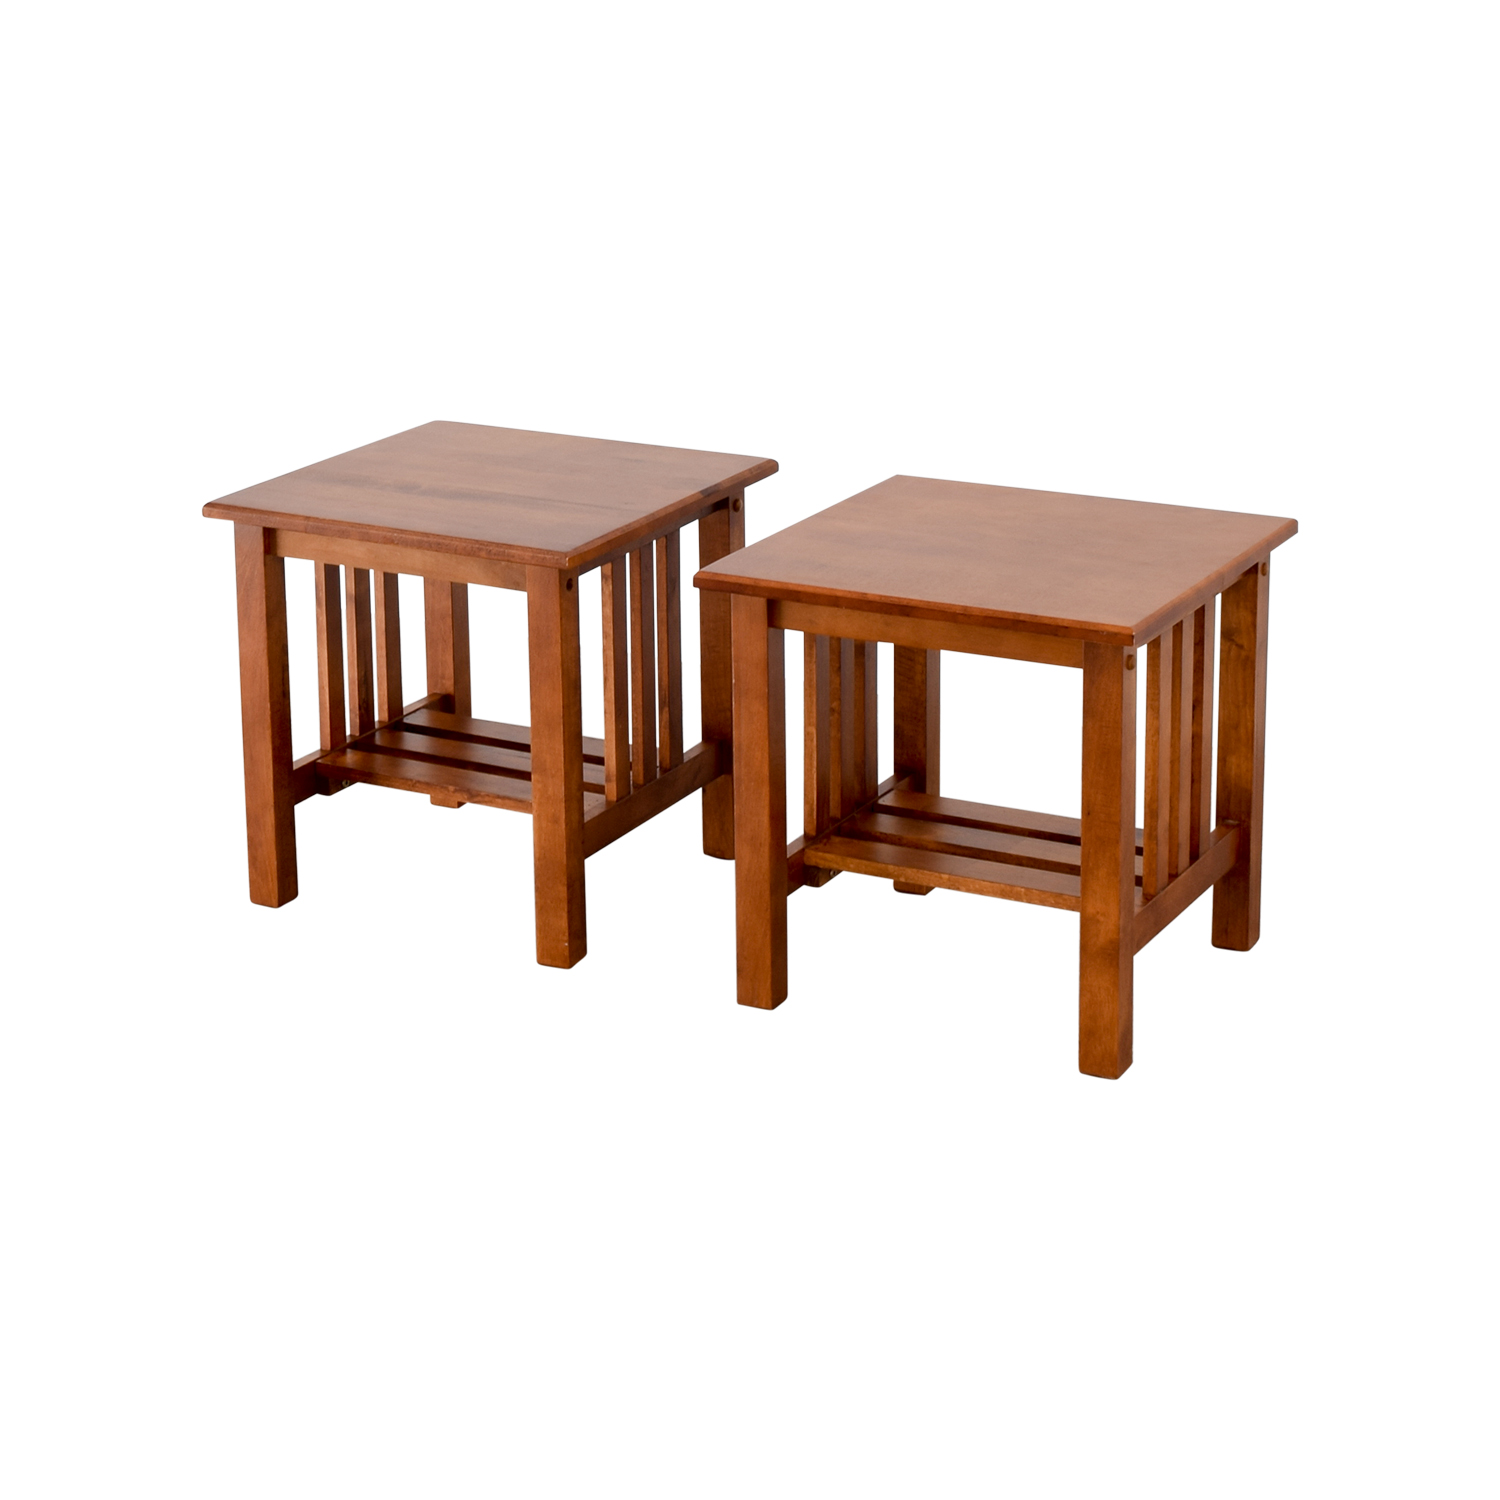 89 Off Craftsman Style Wood End Tables Tables